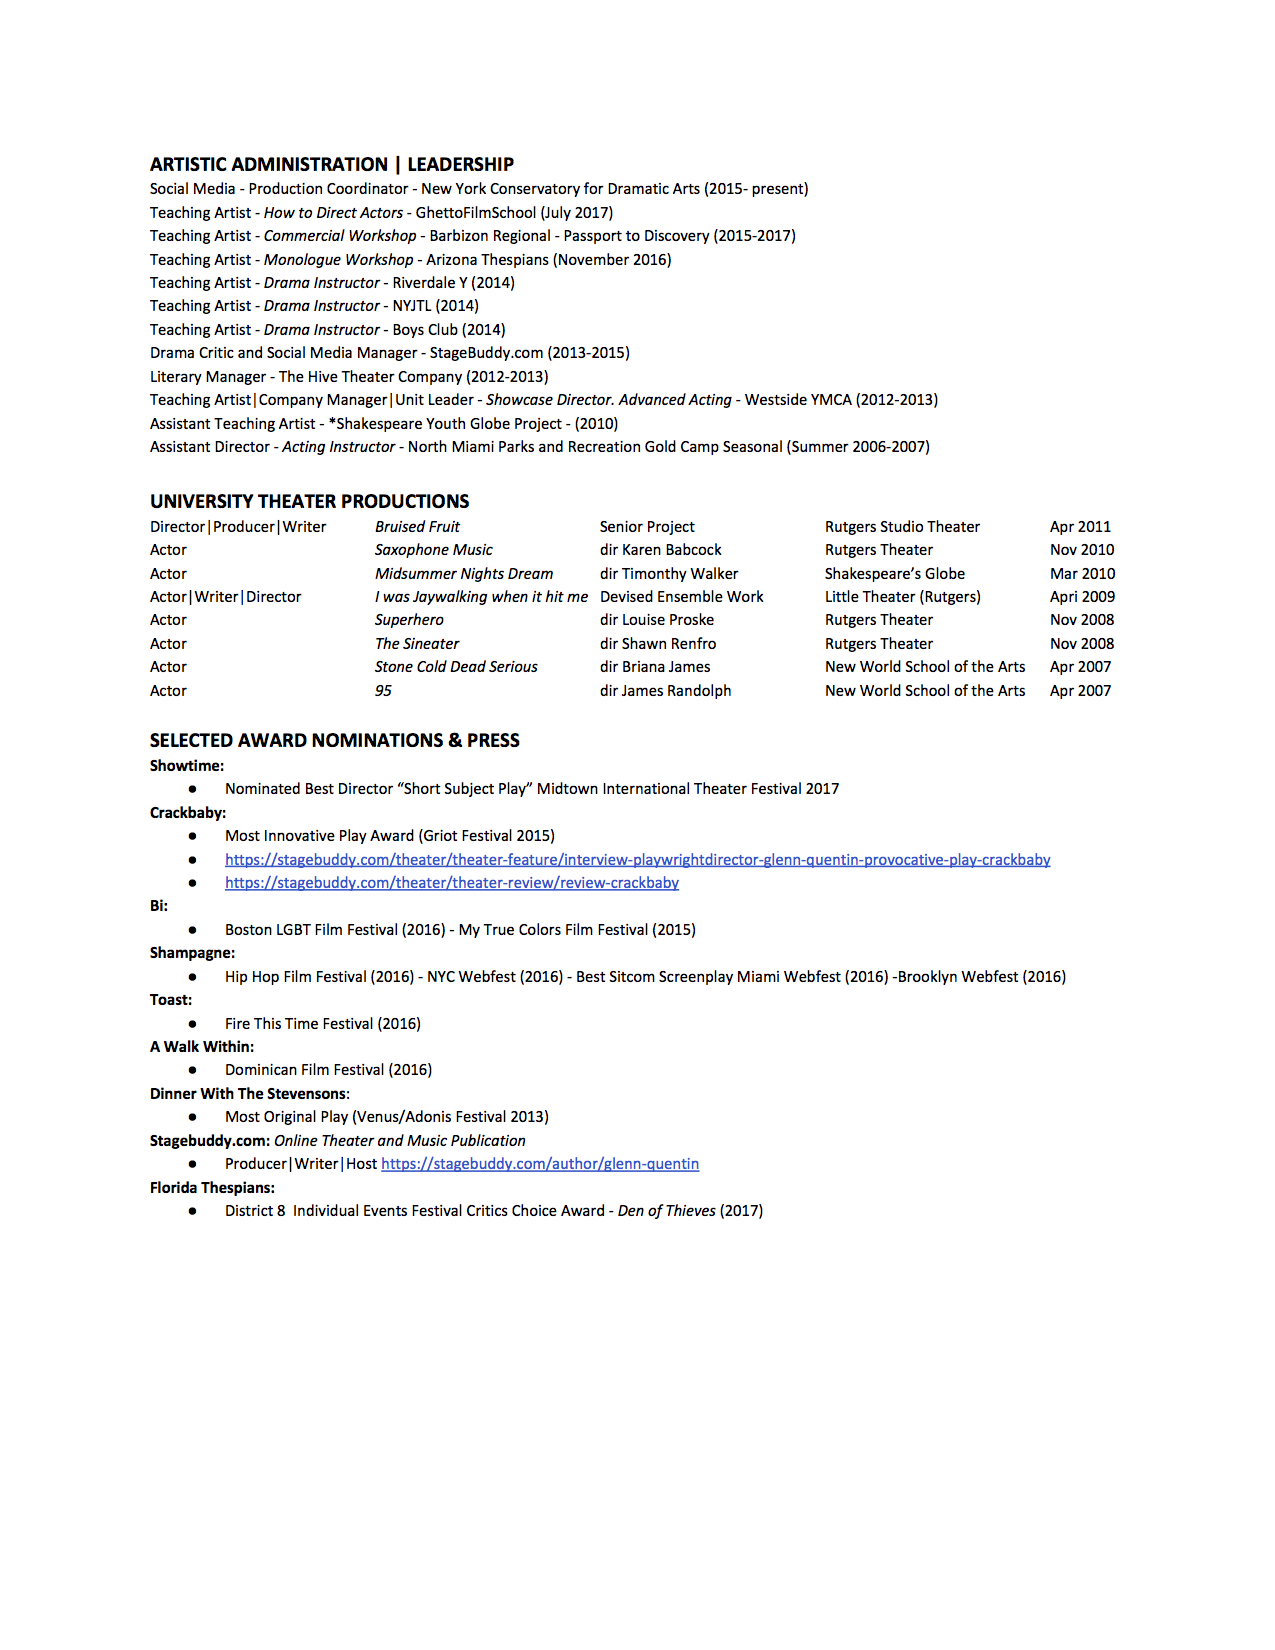 GlennQuentinResume2.jpg